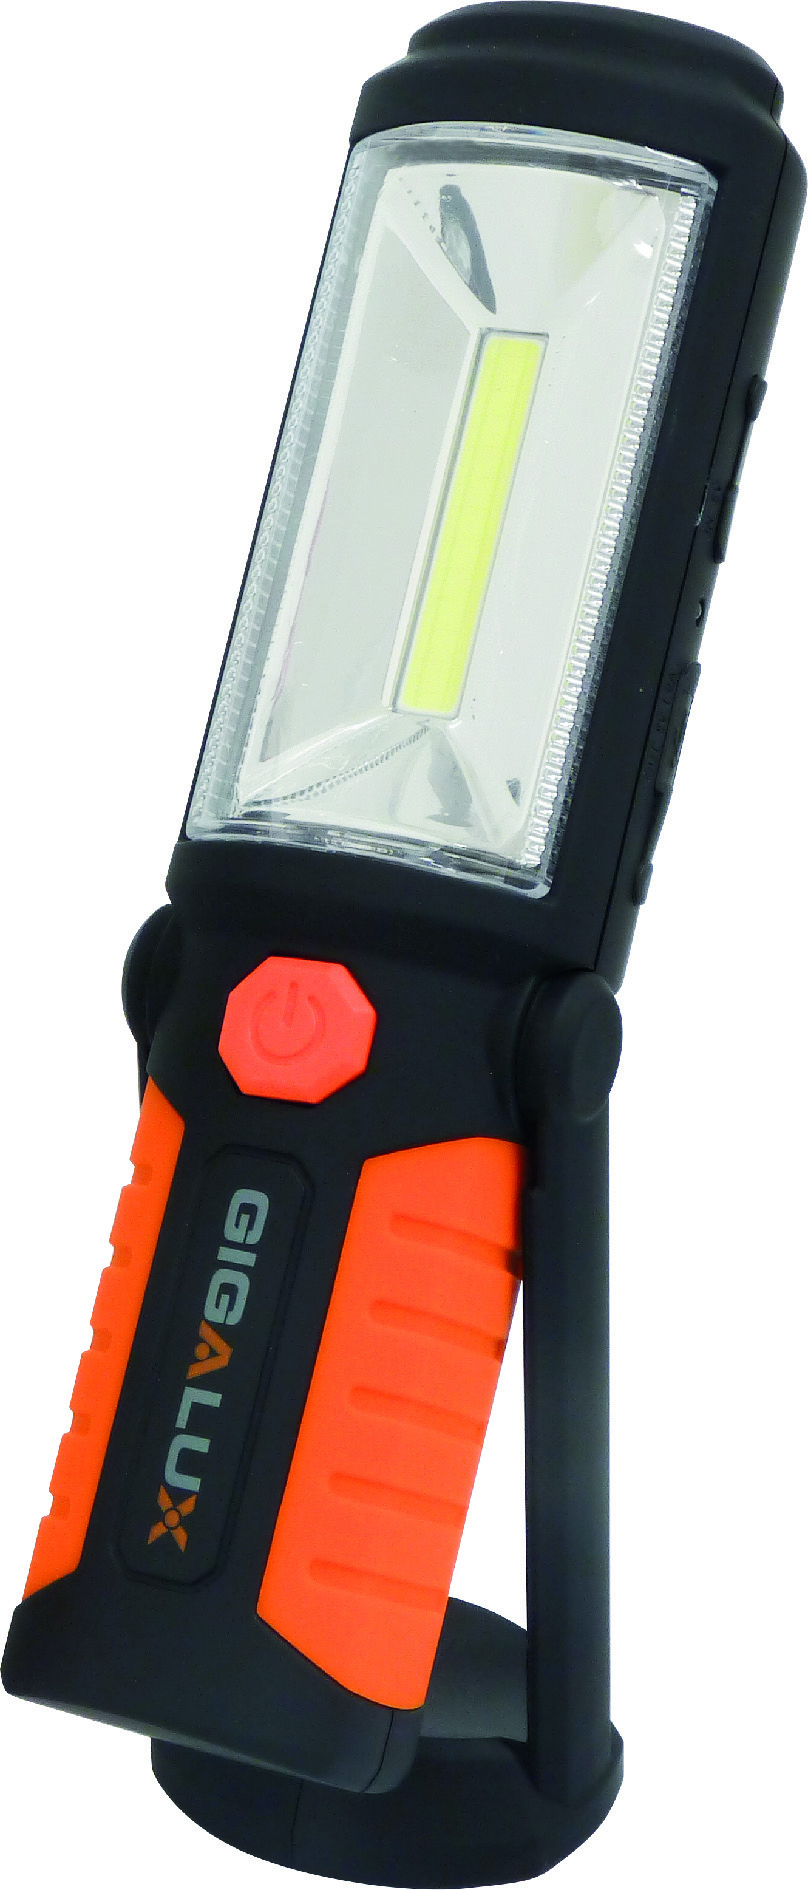 BALADEUSE LED 280 LUMENS ARTICULEE RECHARGEABLE